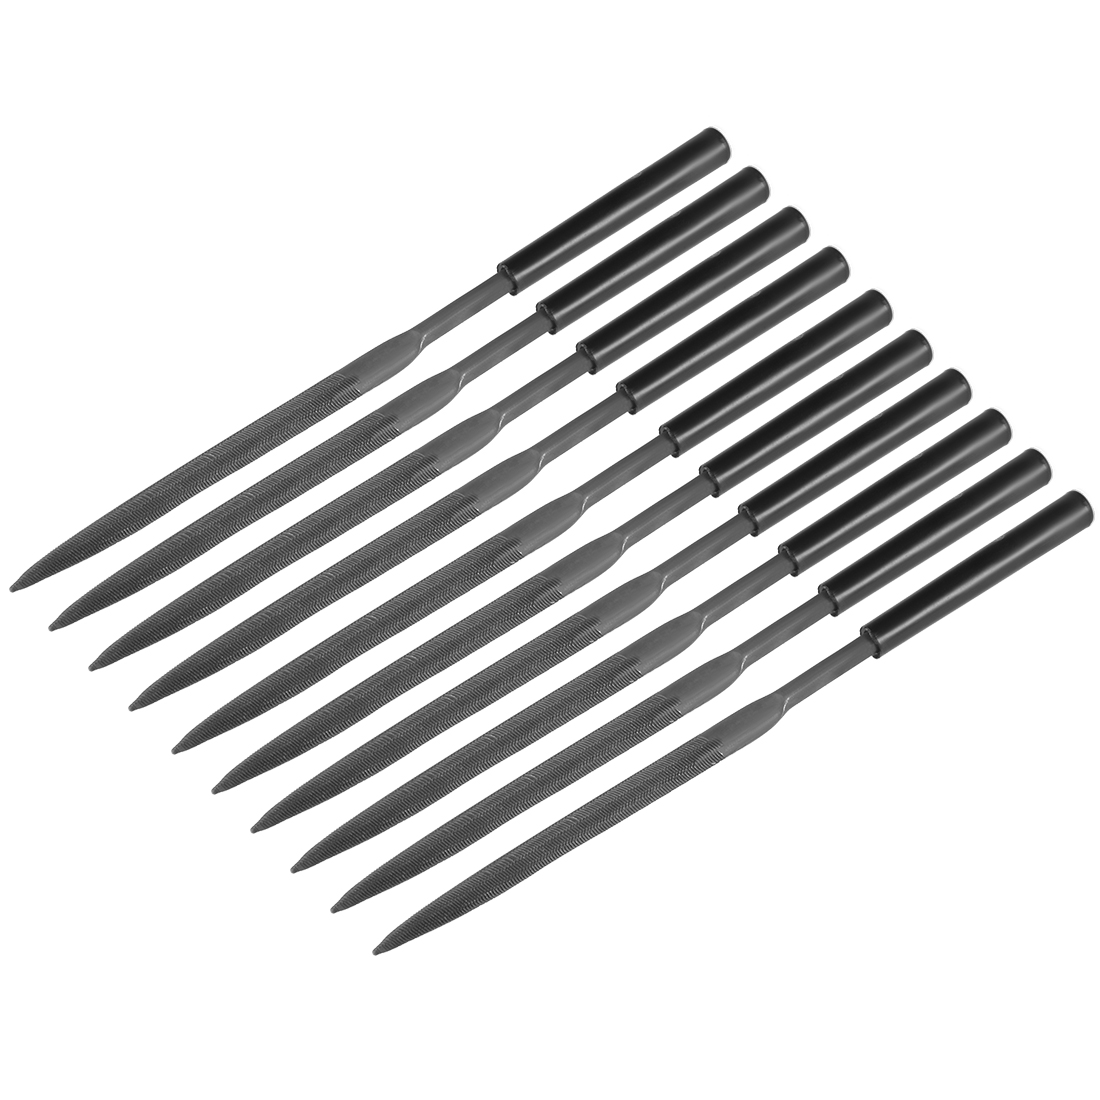 10Pcs Second Cut Steel Half Round Needle File with Plastic Handle, 5mm x 180mm